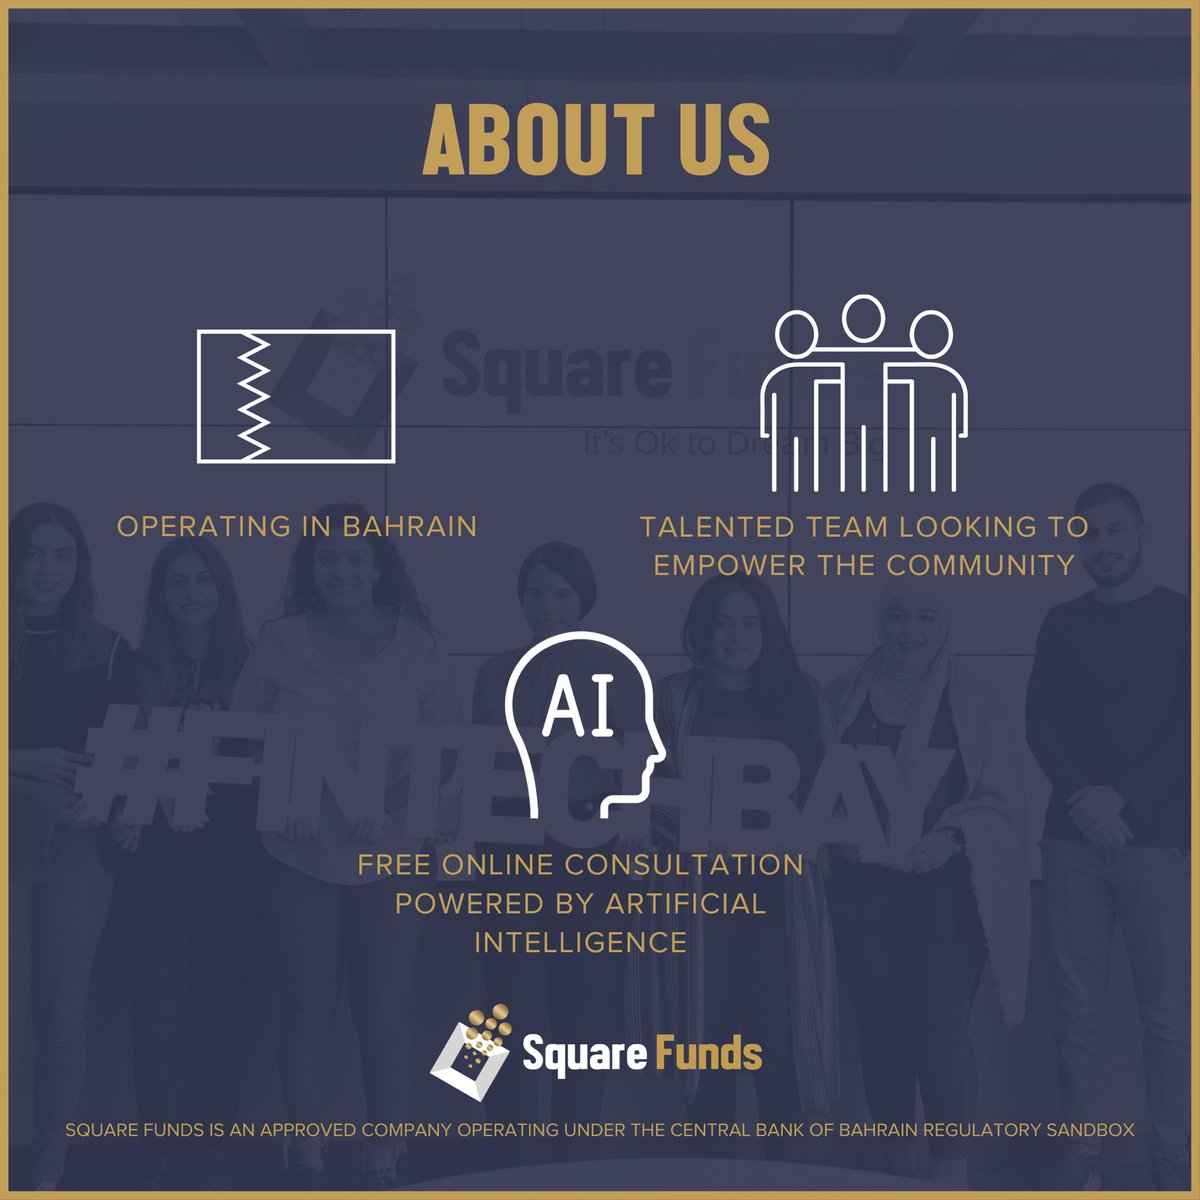 Wondering who we are and what we do? #SquareFunds #BahrainInvestment https://t.co/MQUFbidpcj